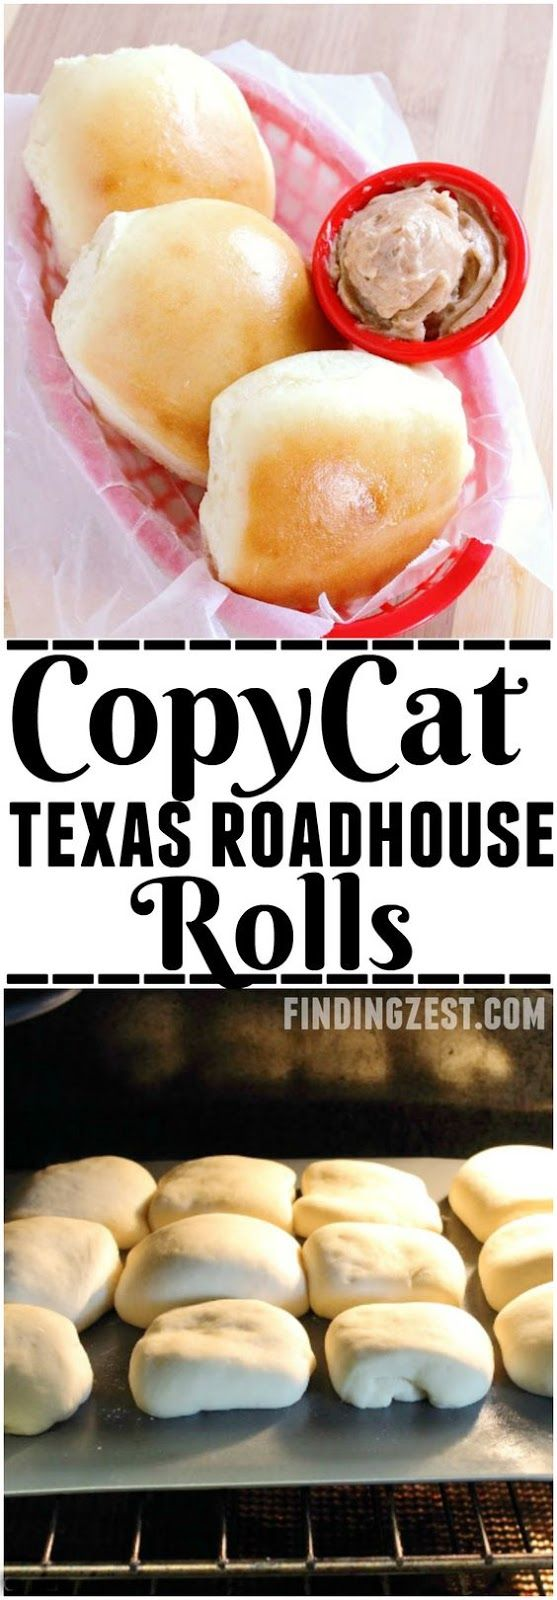 Copycat Texas Roadhouse Rolls with Cinnamon Butter Recipe - CUCINA DE YUNG